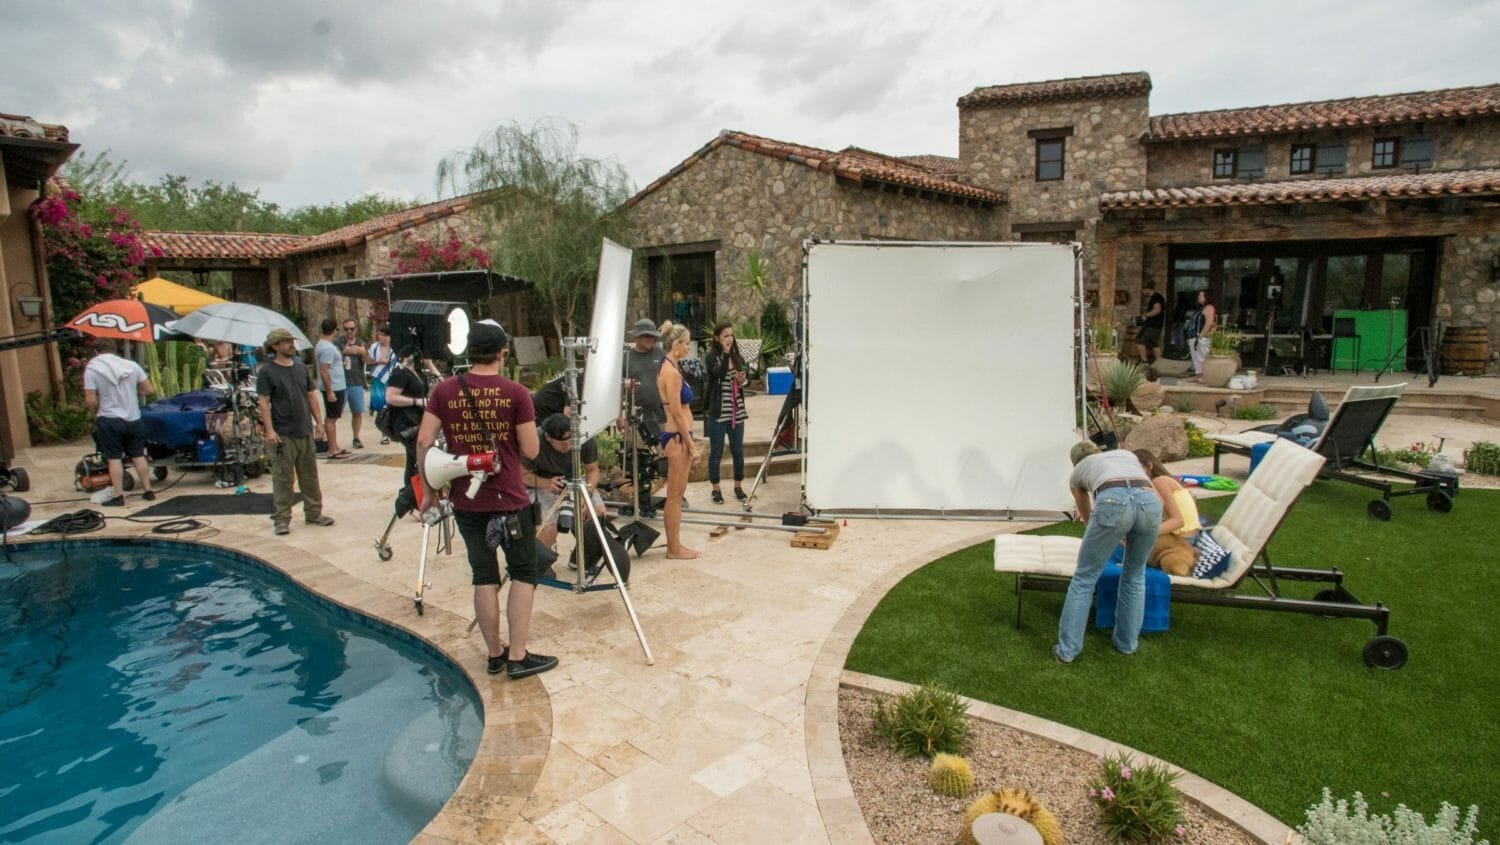 What Are Common Rates For Video Production Crews?